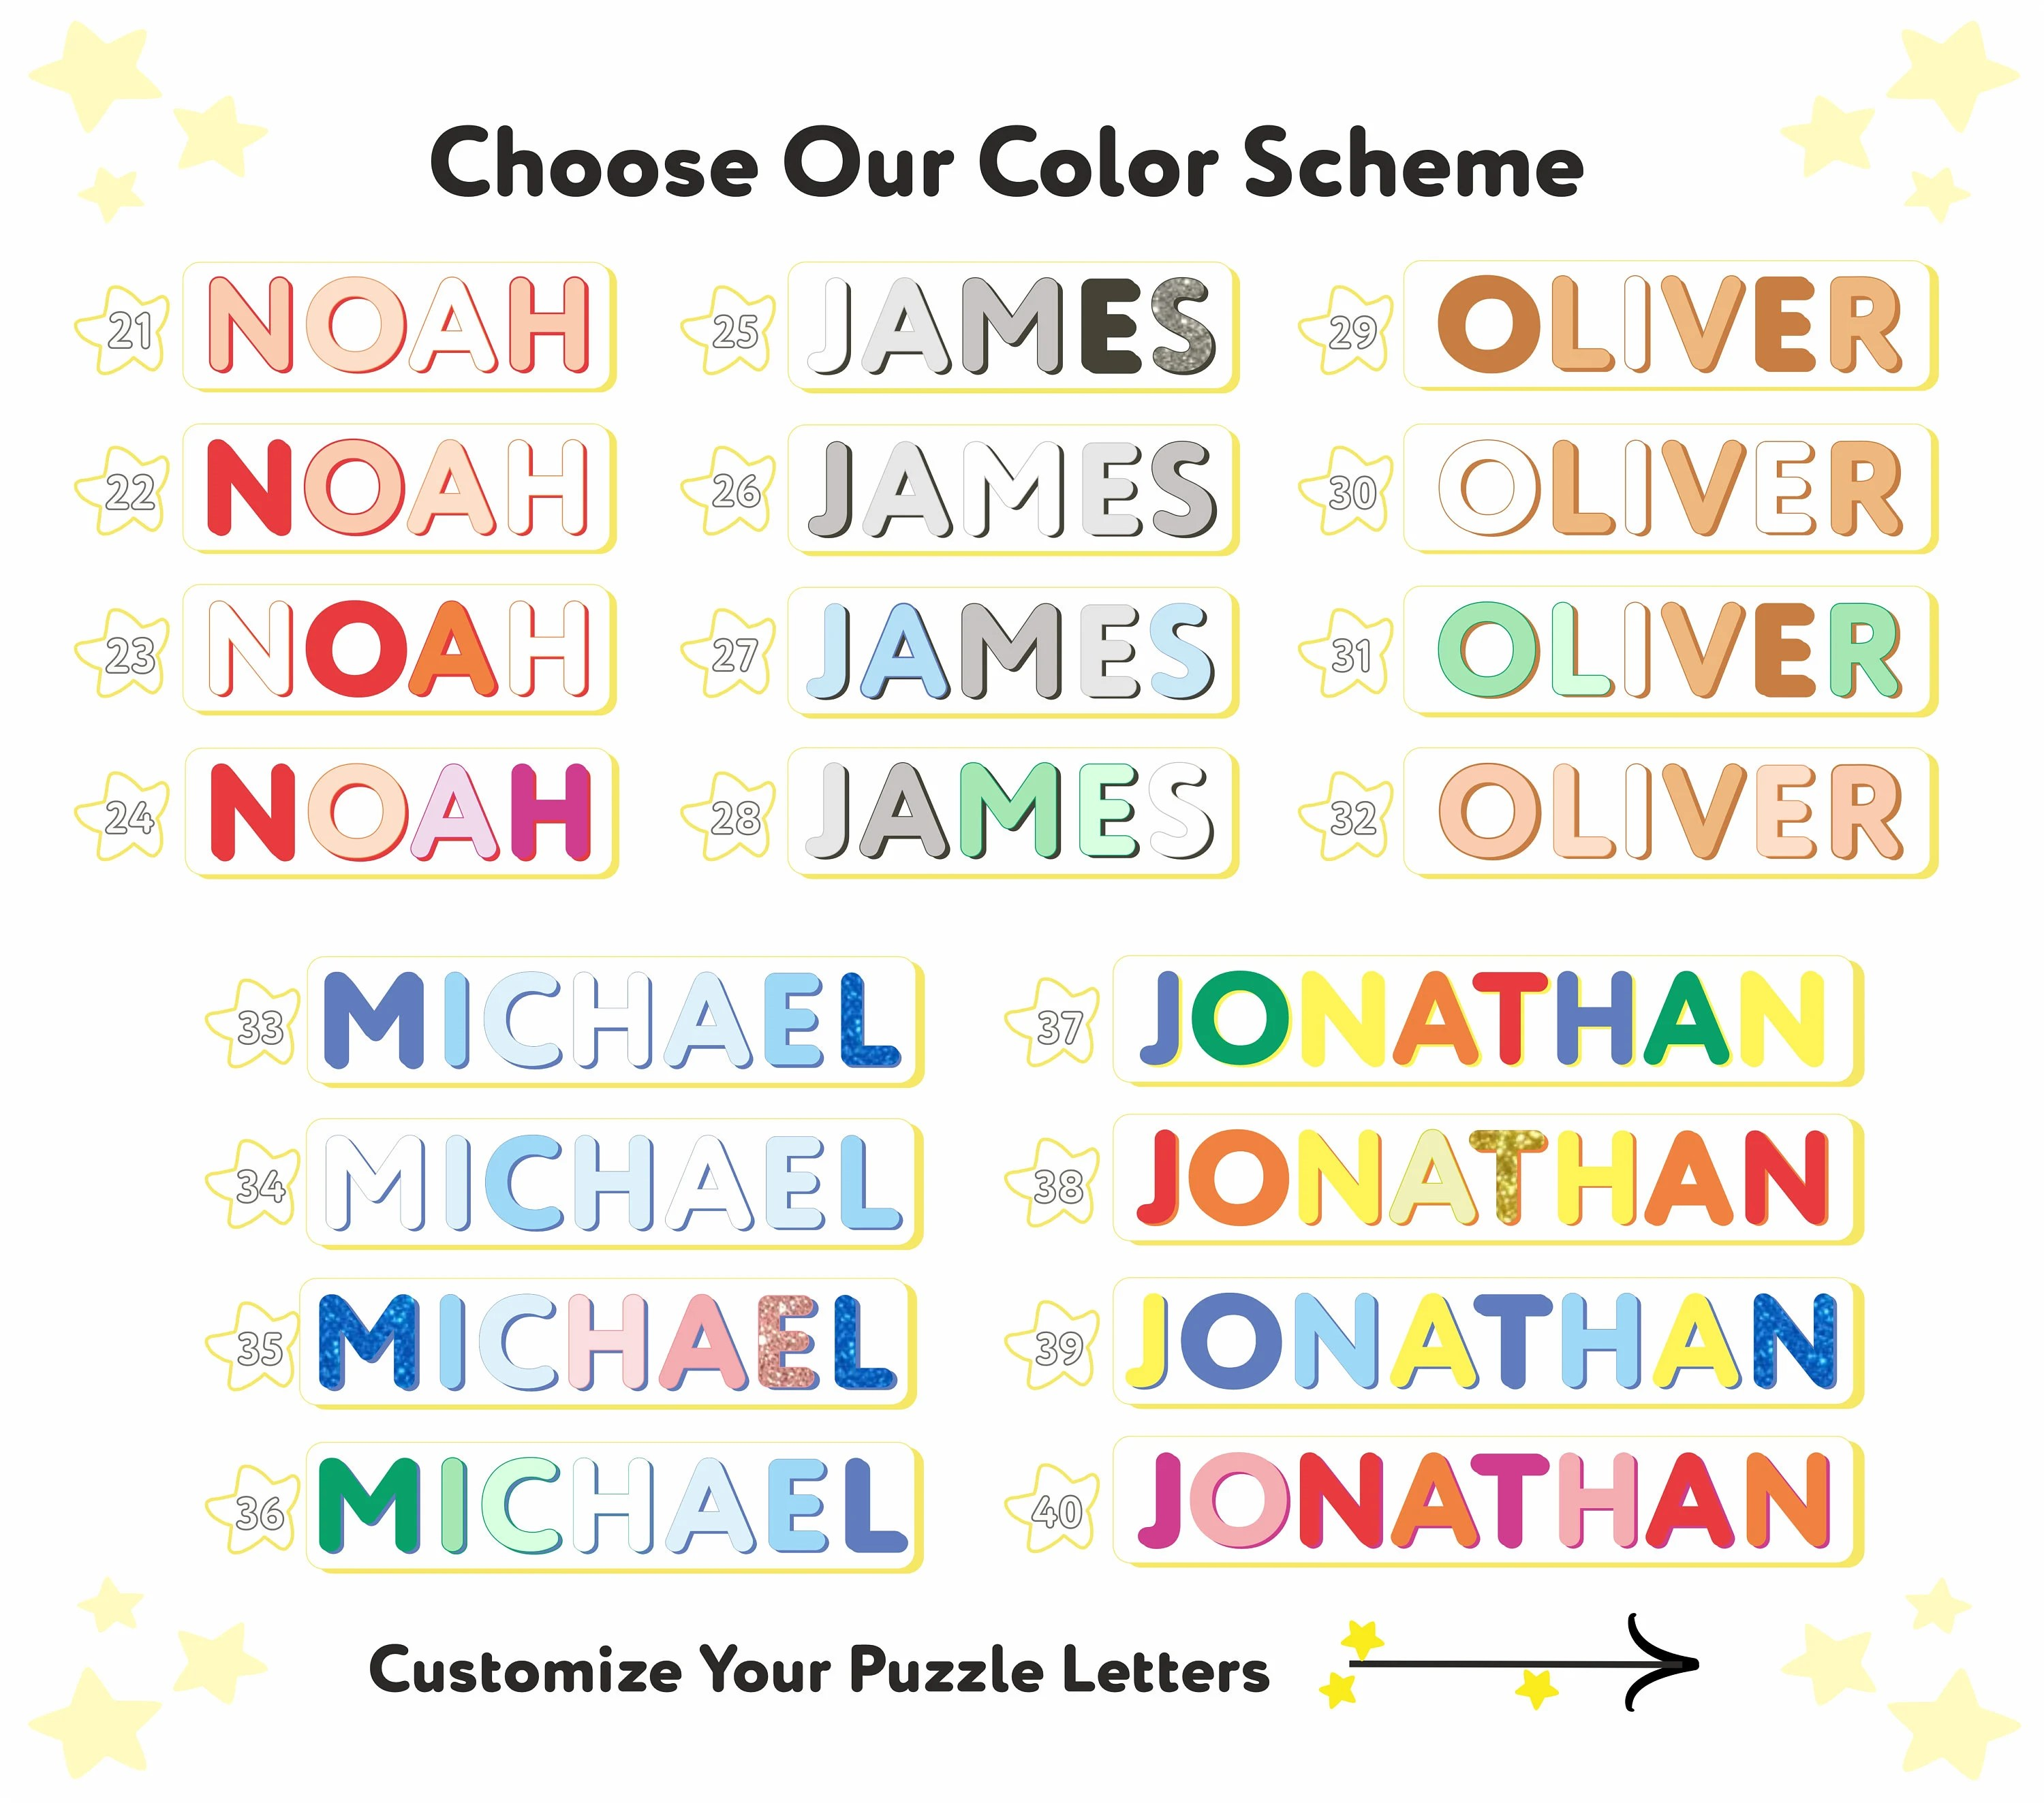 LIAM Personalized Wooden Name Puzzle Handmade Customized image 5